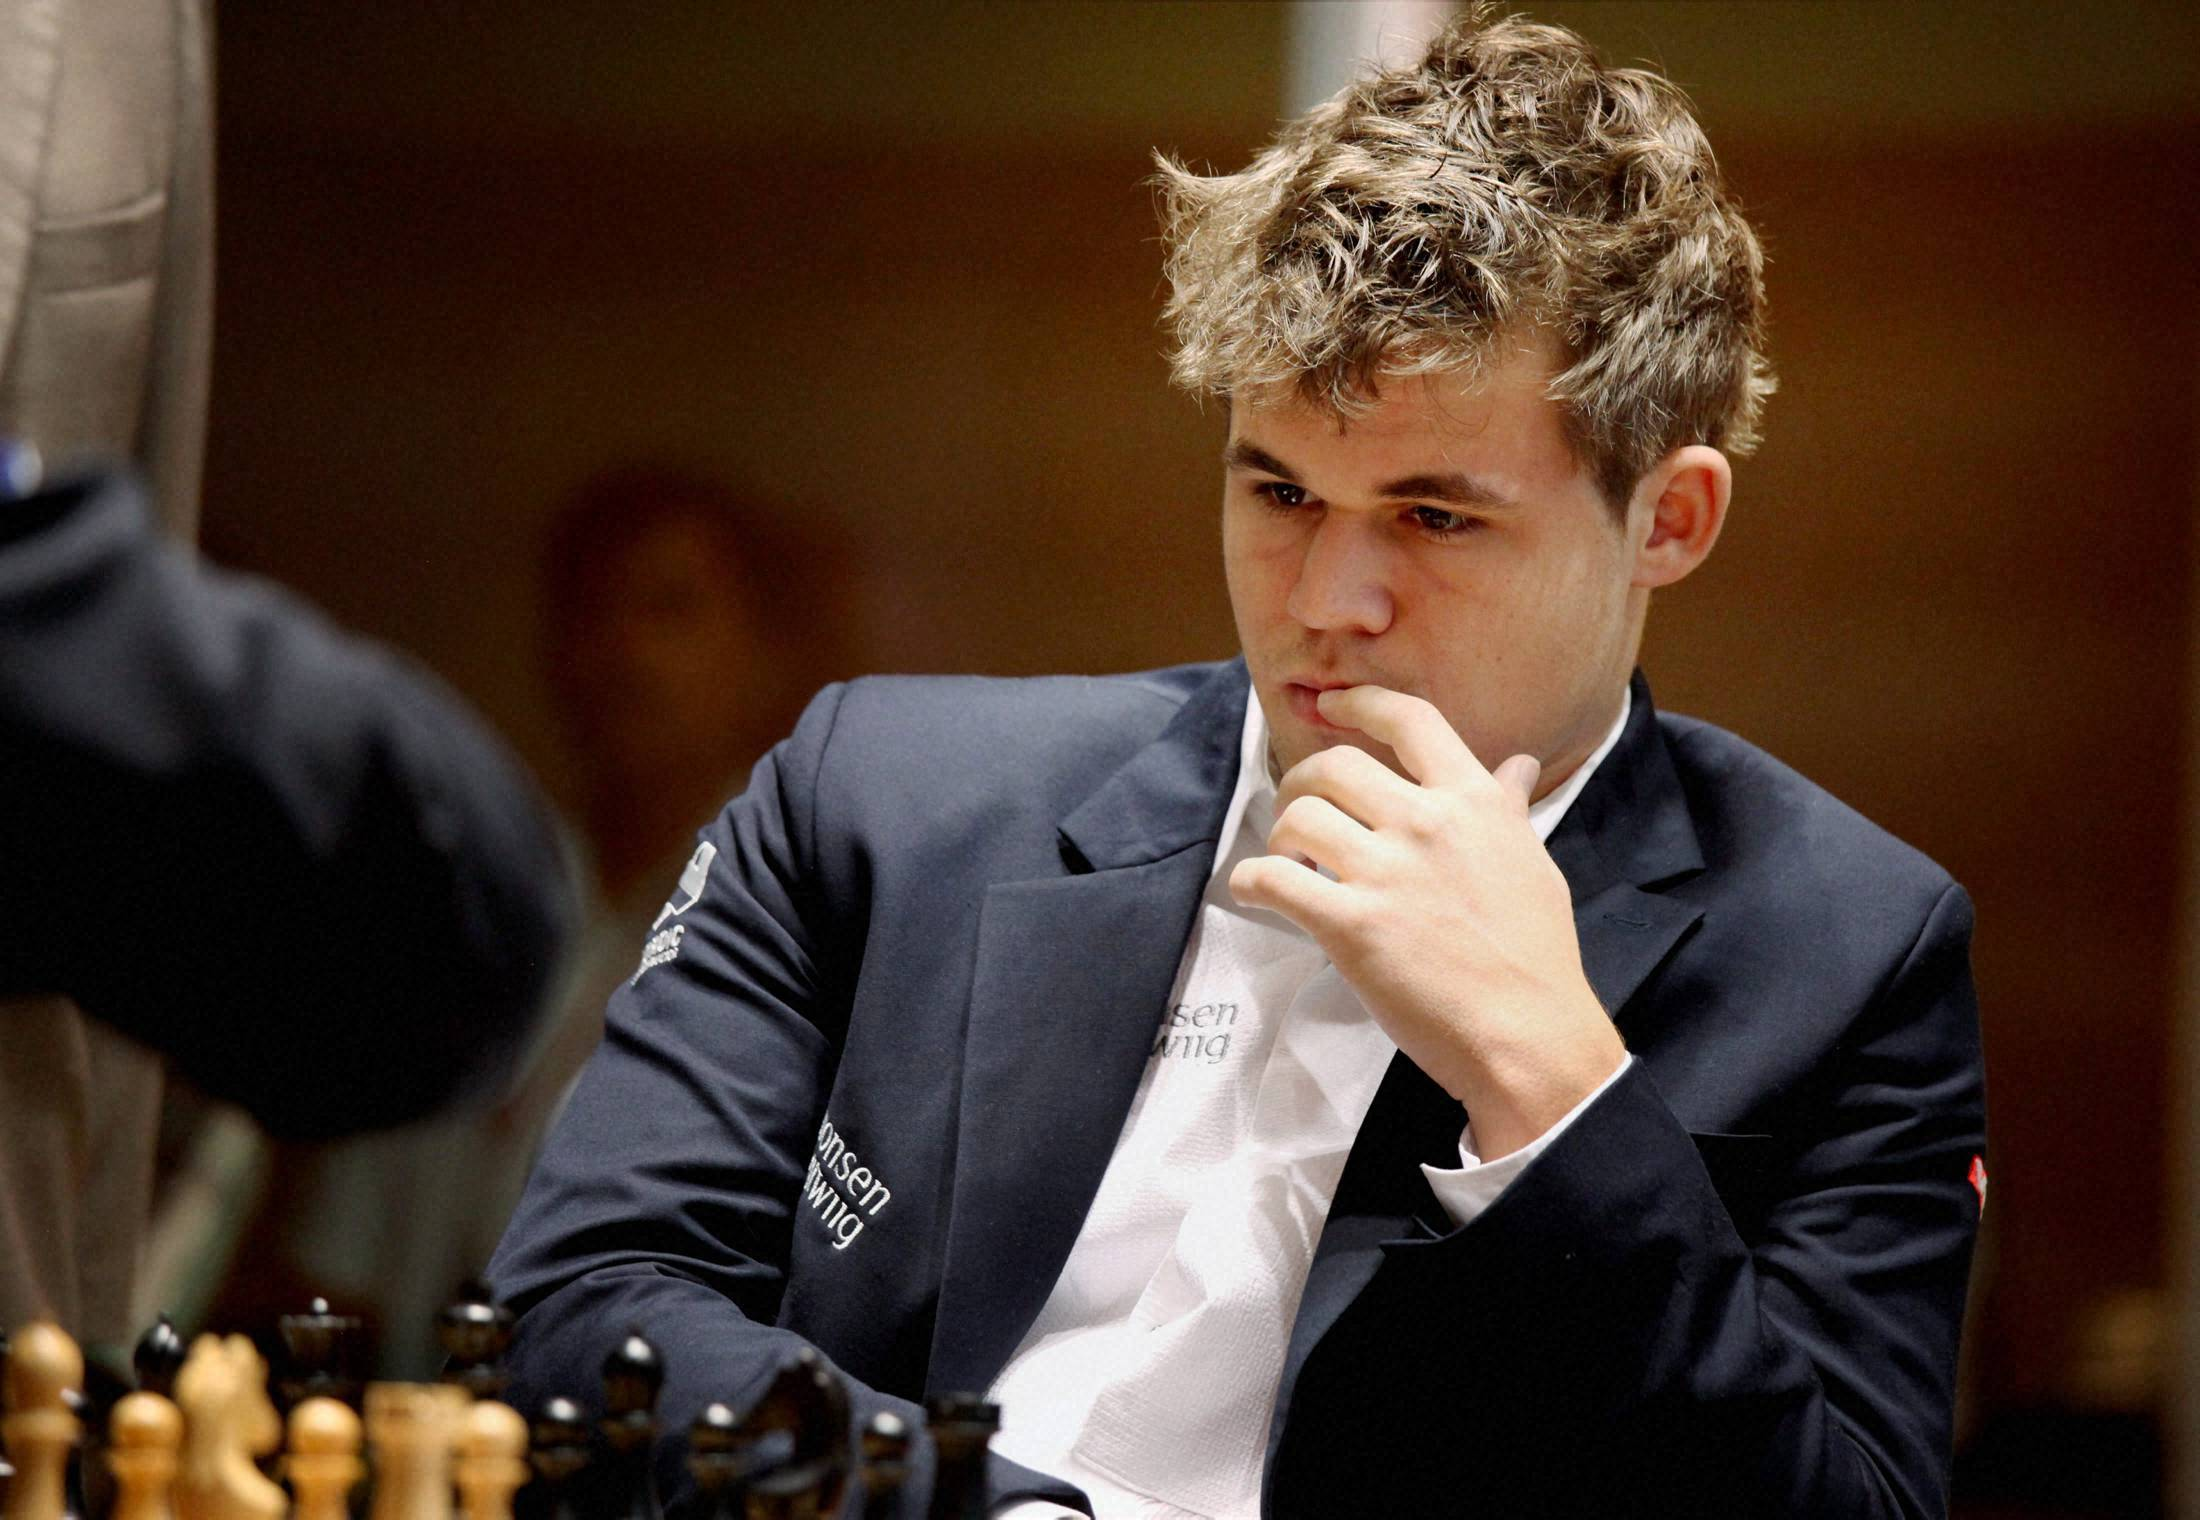 Magnus Carlsen - Highest official FIDE rating